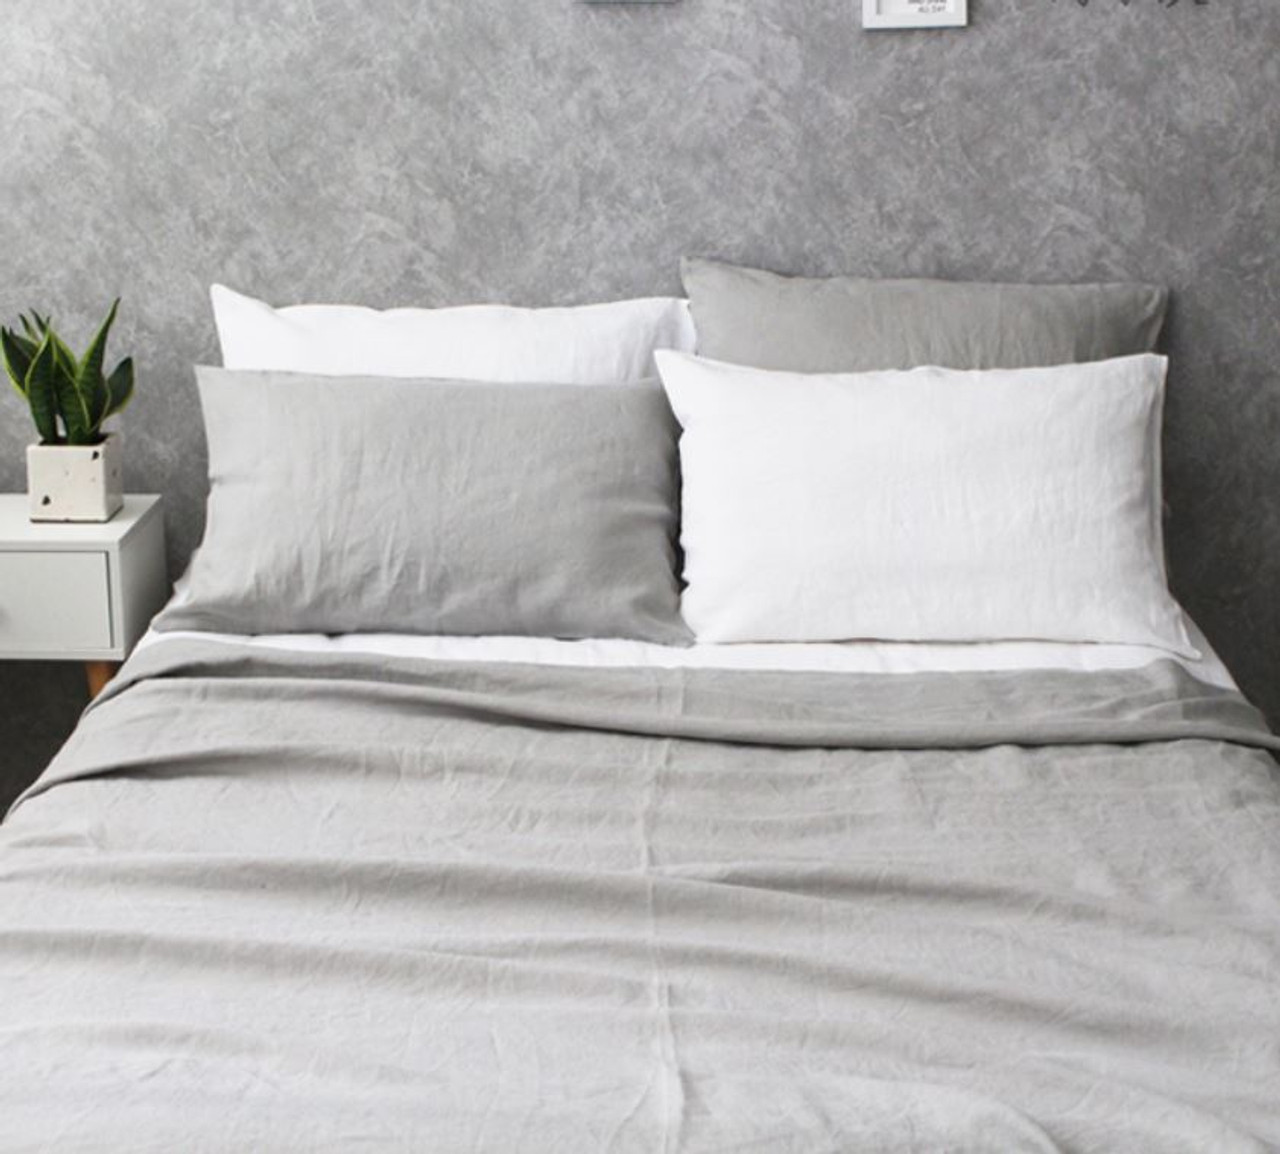 Stone Light Grey Duvet Cover Natural Linen Free Linen Swatches